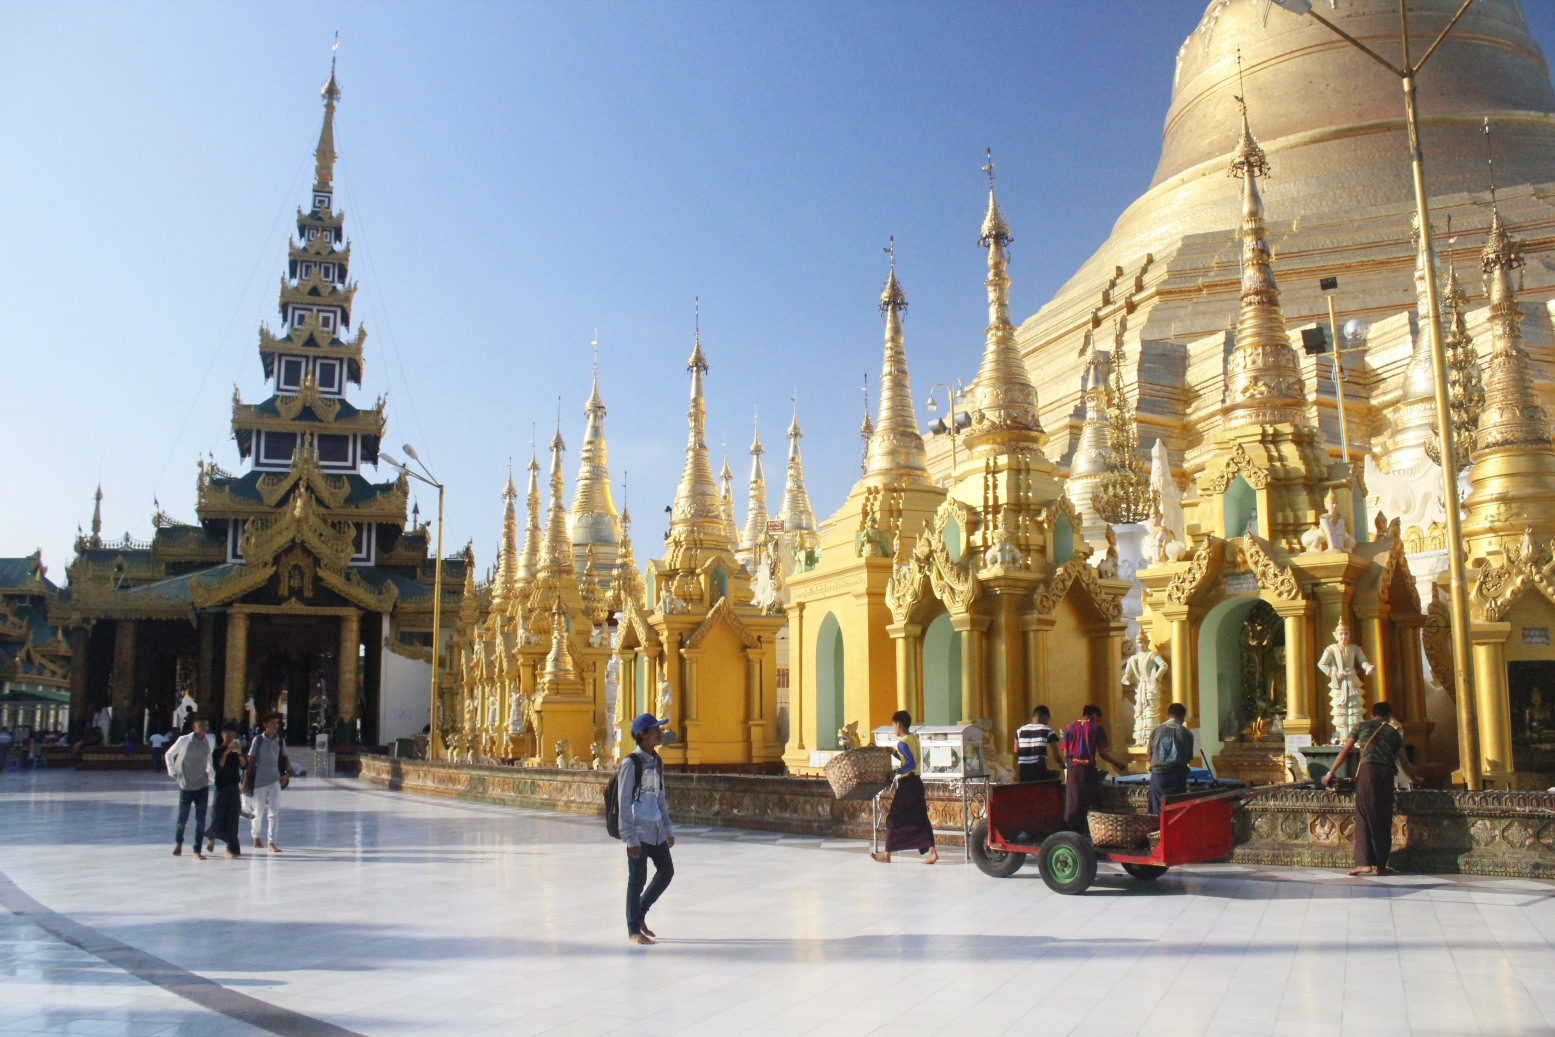 Travelling Homebody - Your 24 hour guide to Yangon - Shewadagon Pagoda